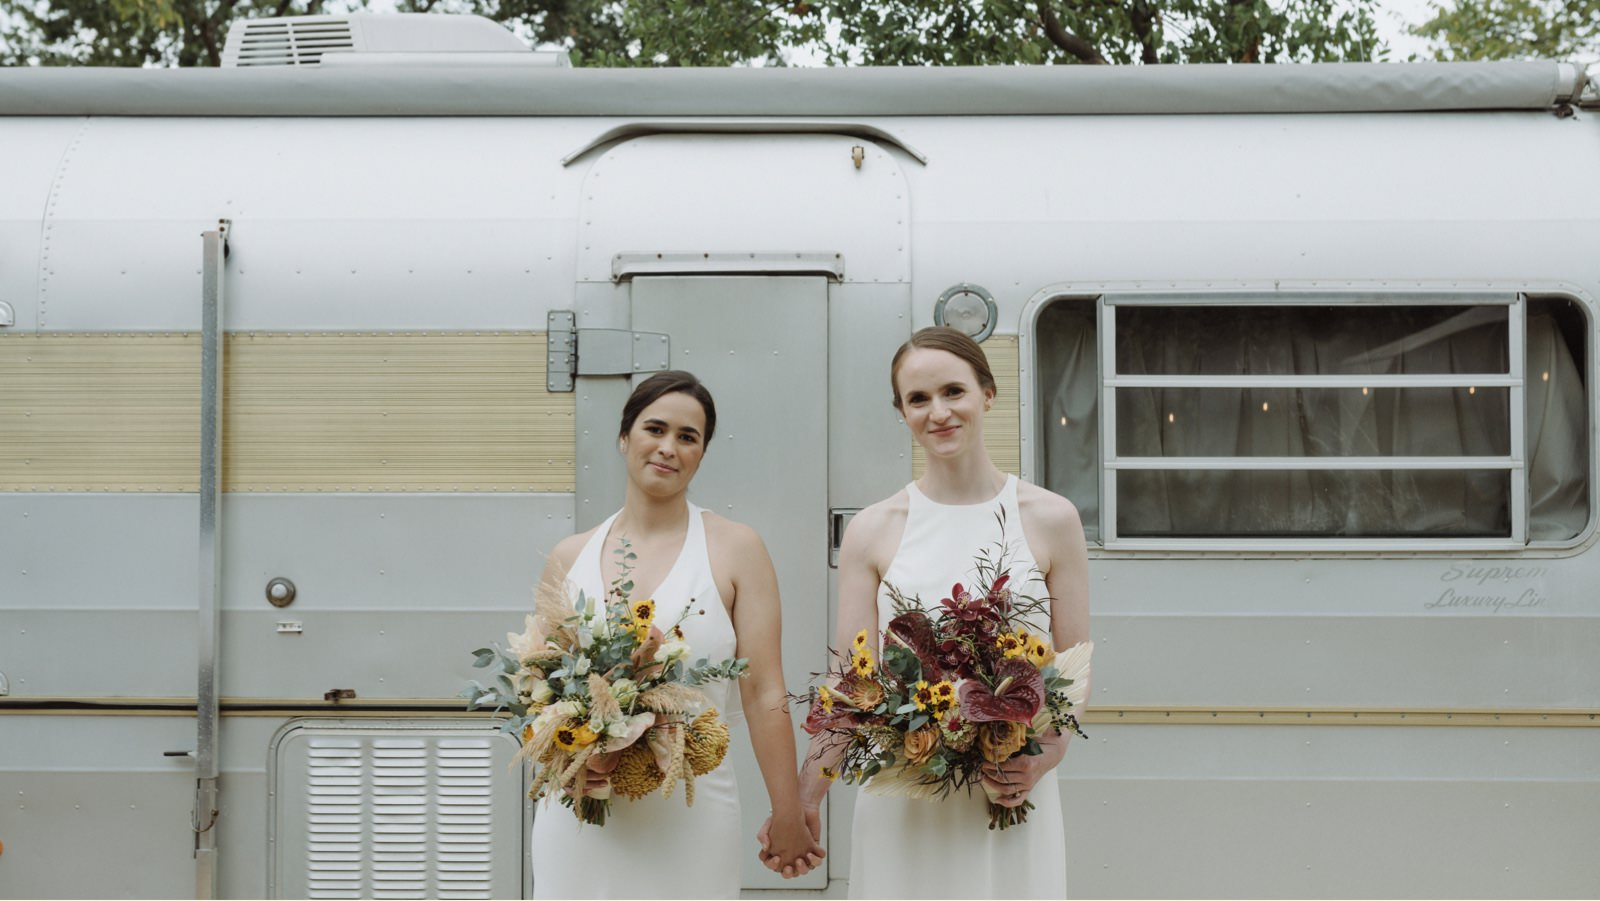 Brides holding hands in front of the trailer at Springdale Station